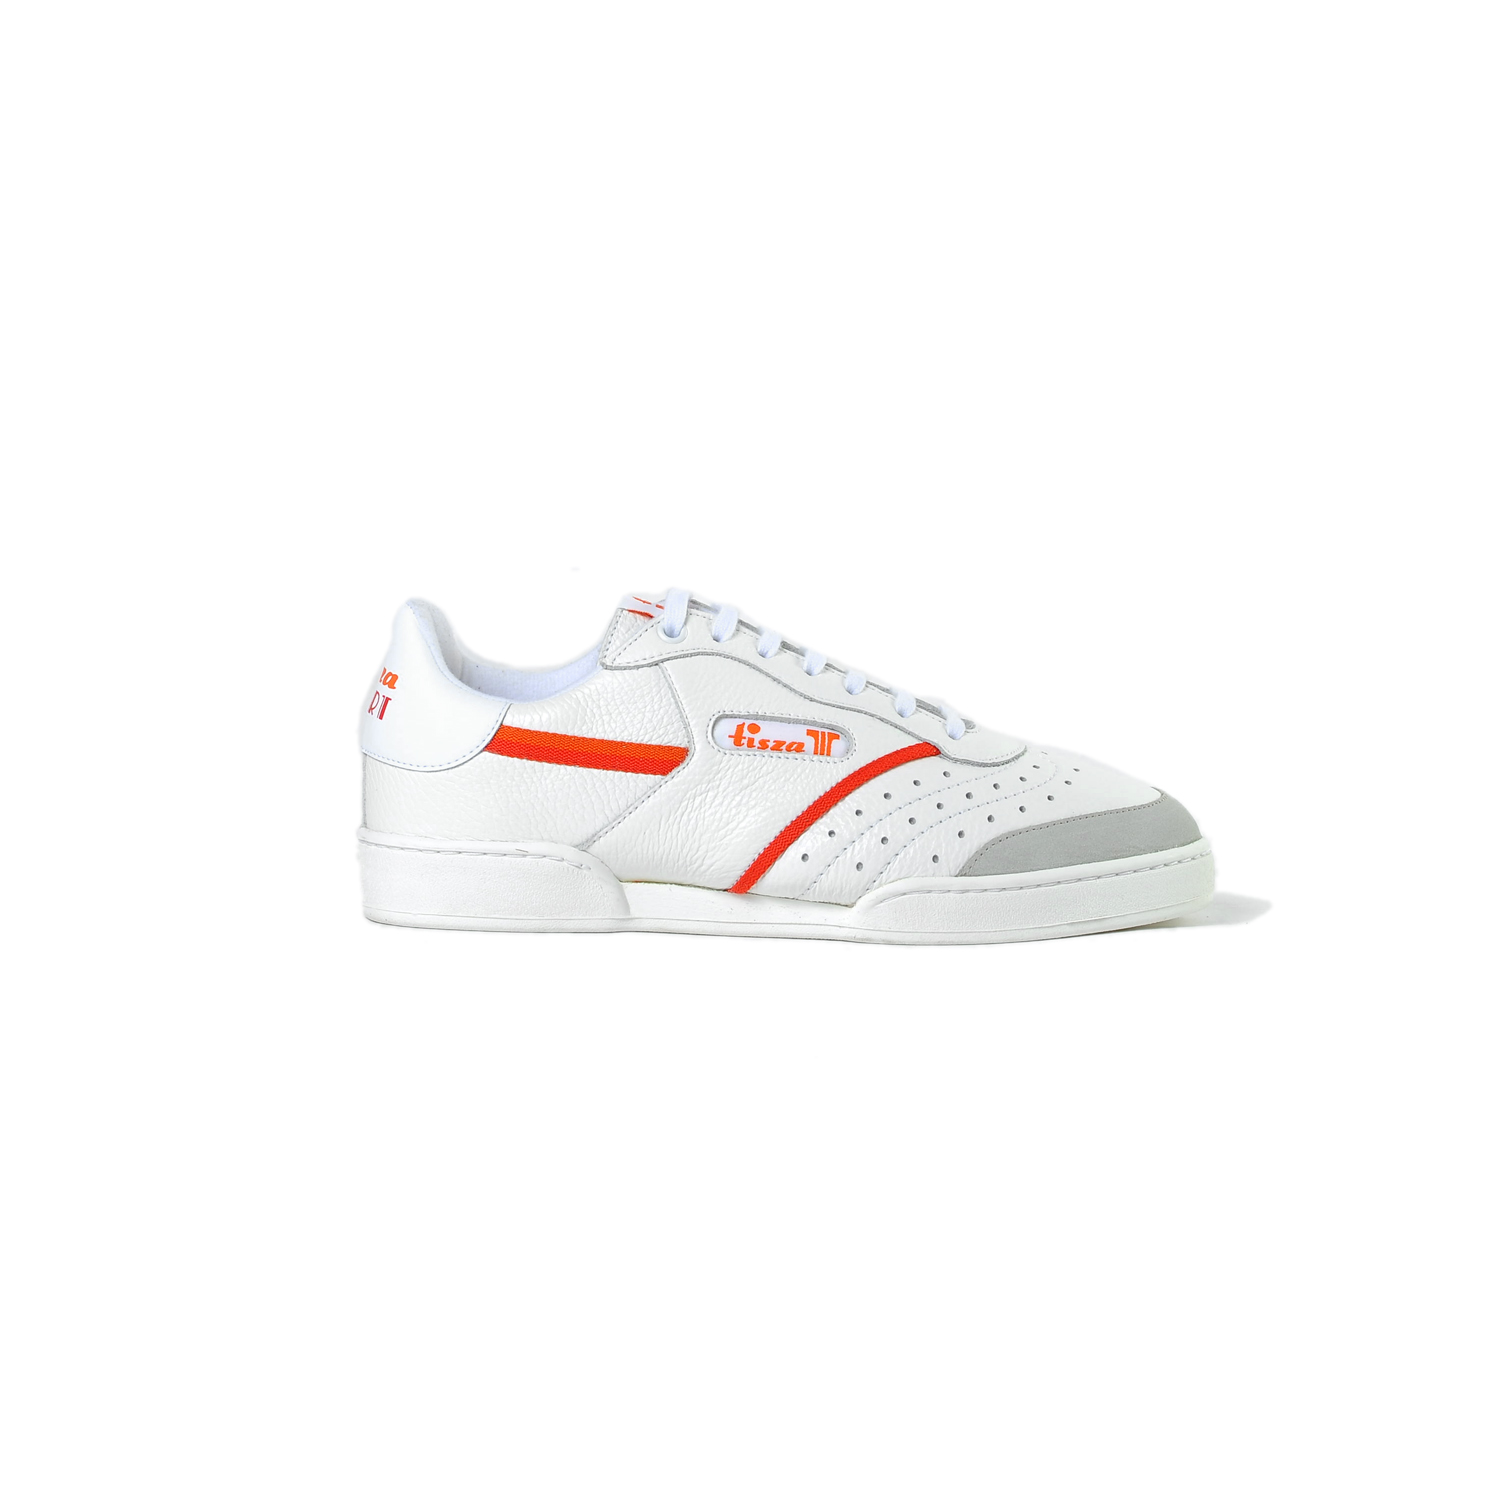 Tisza shoes - Sport - White-red-orange